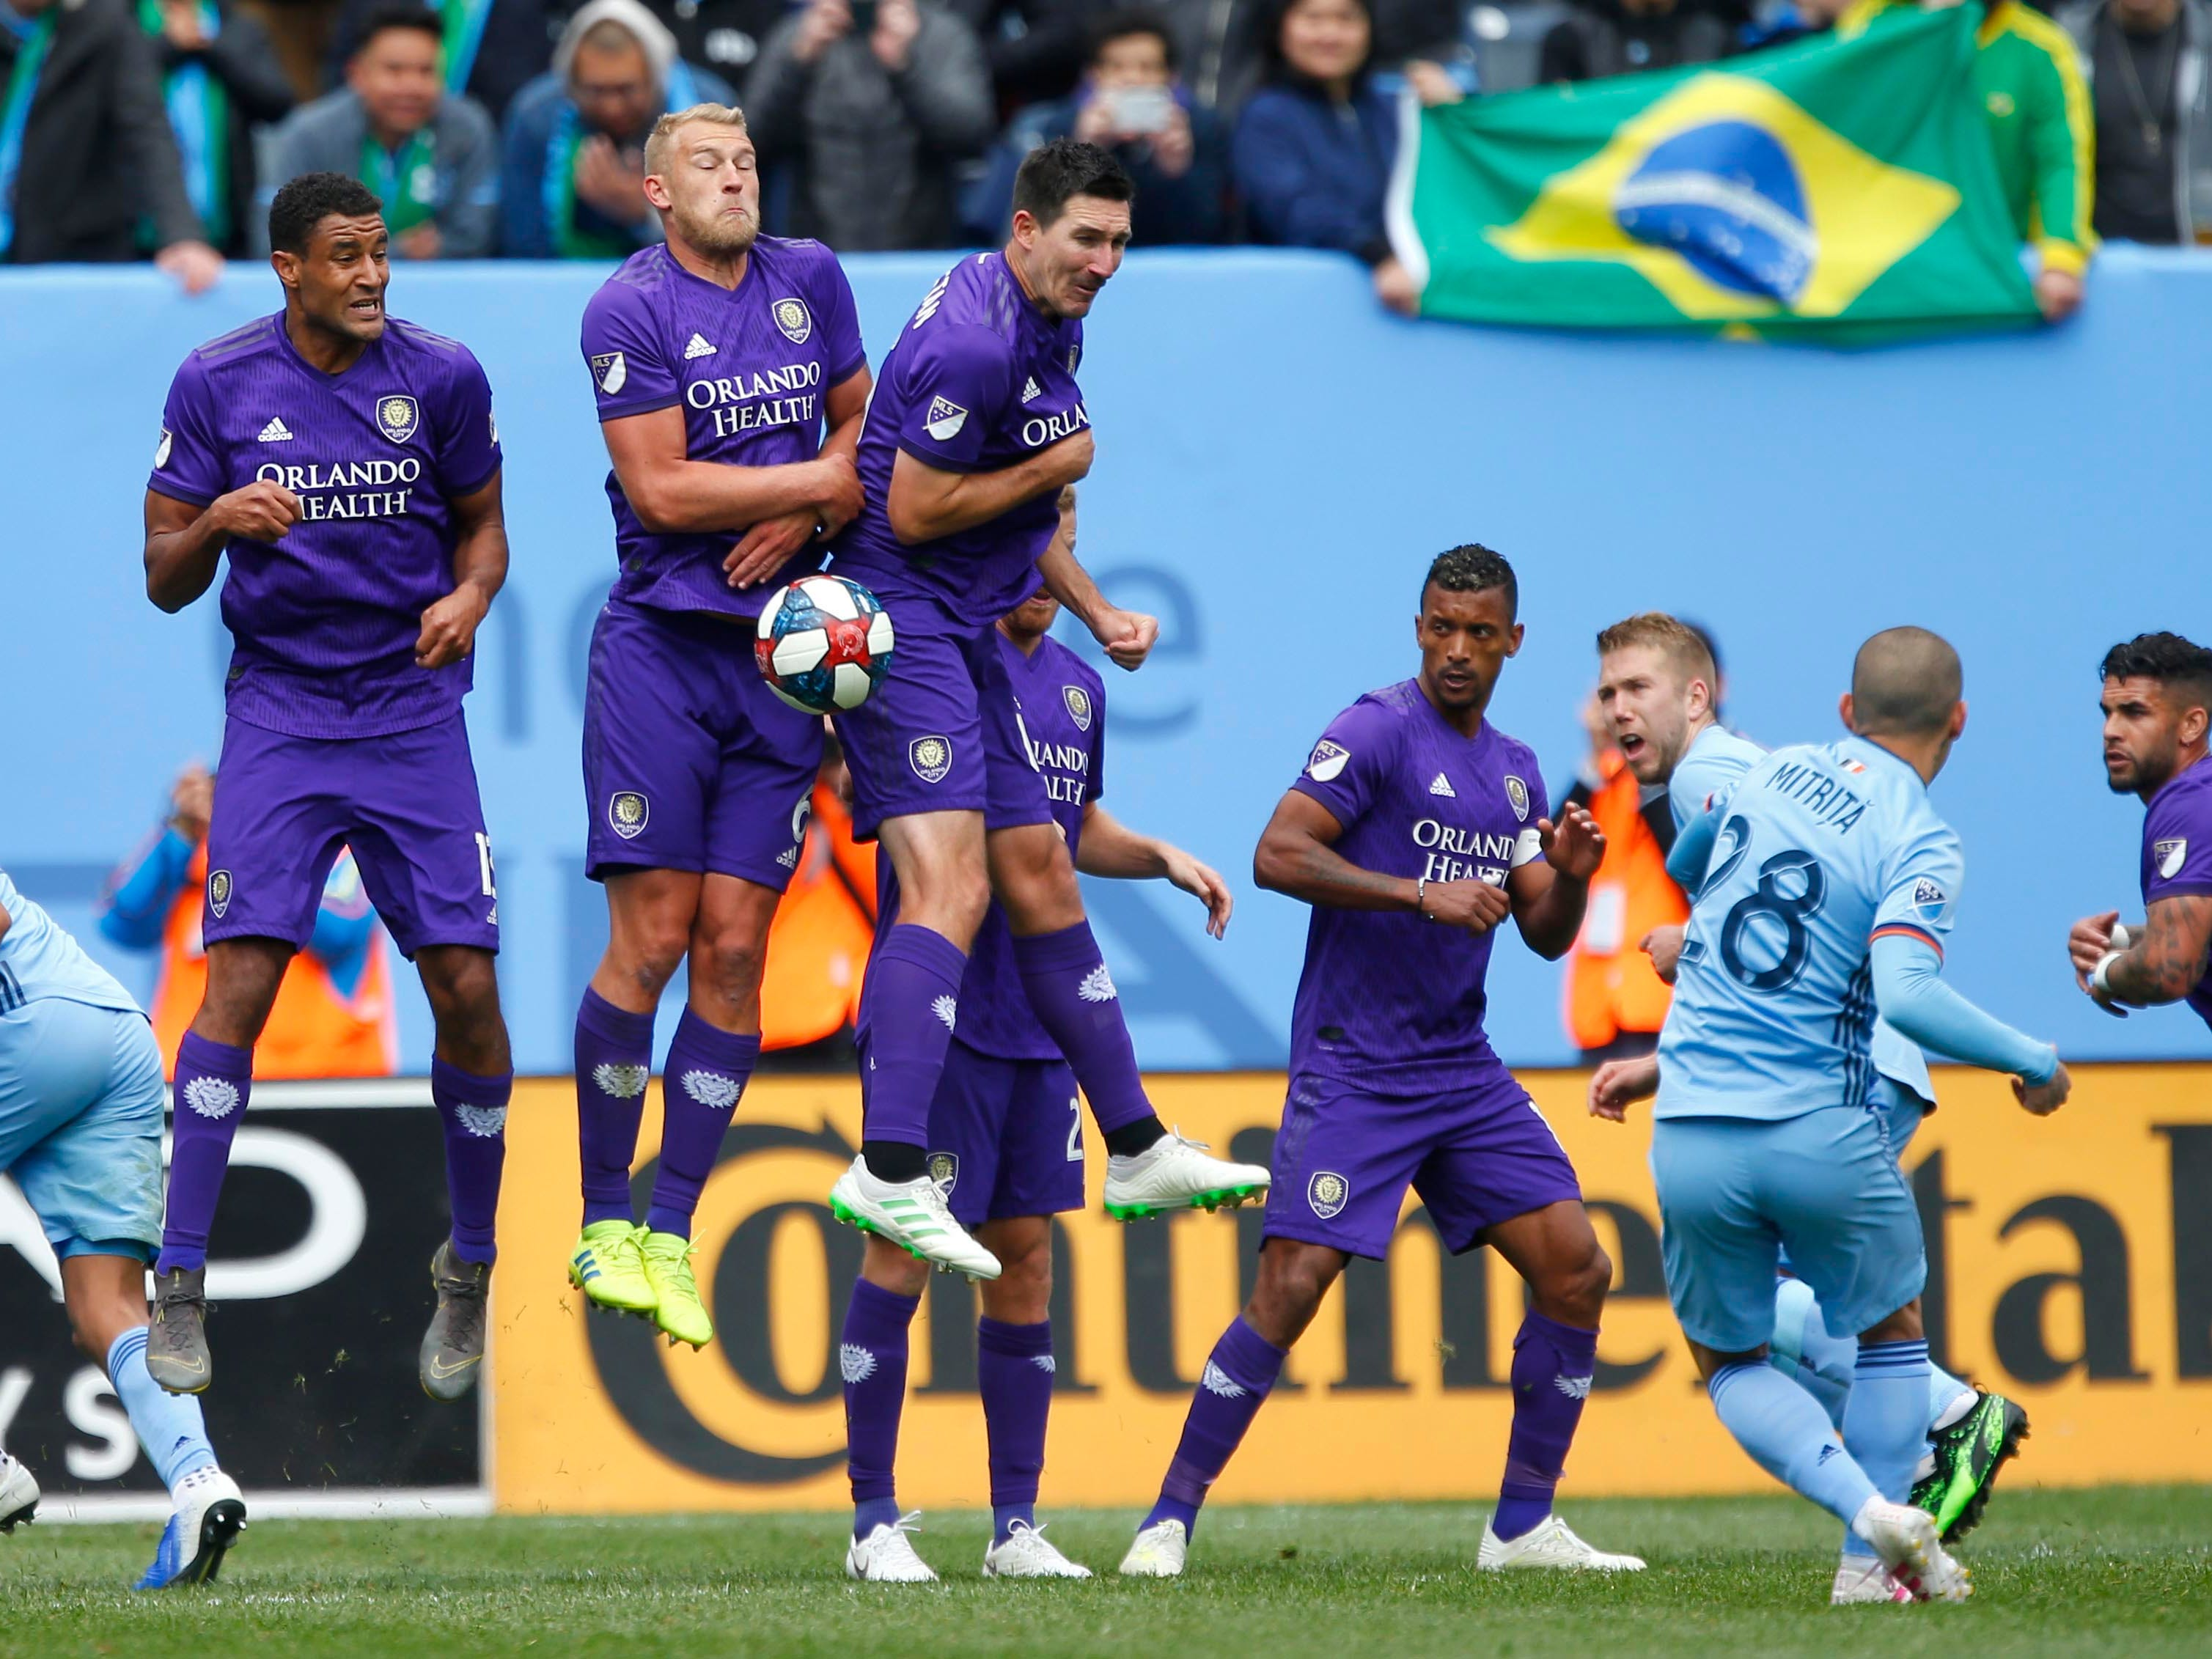 April 27: Orlando City's Tesho Akindele (13), Robin Jansson (6) and Sacha Kljestan (16) defend a penalty kick by New York City FC's Alexandru Mitrita (28) during the second half at Yankee Stadium. The game ended in a 1-1 tie.